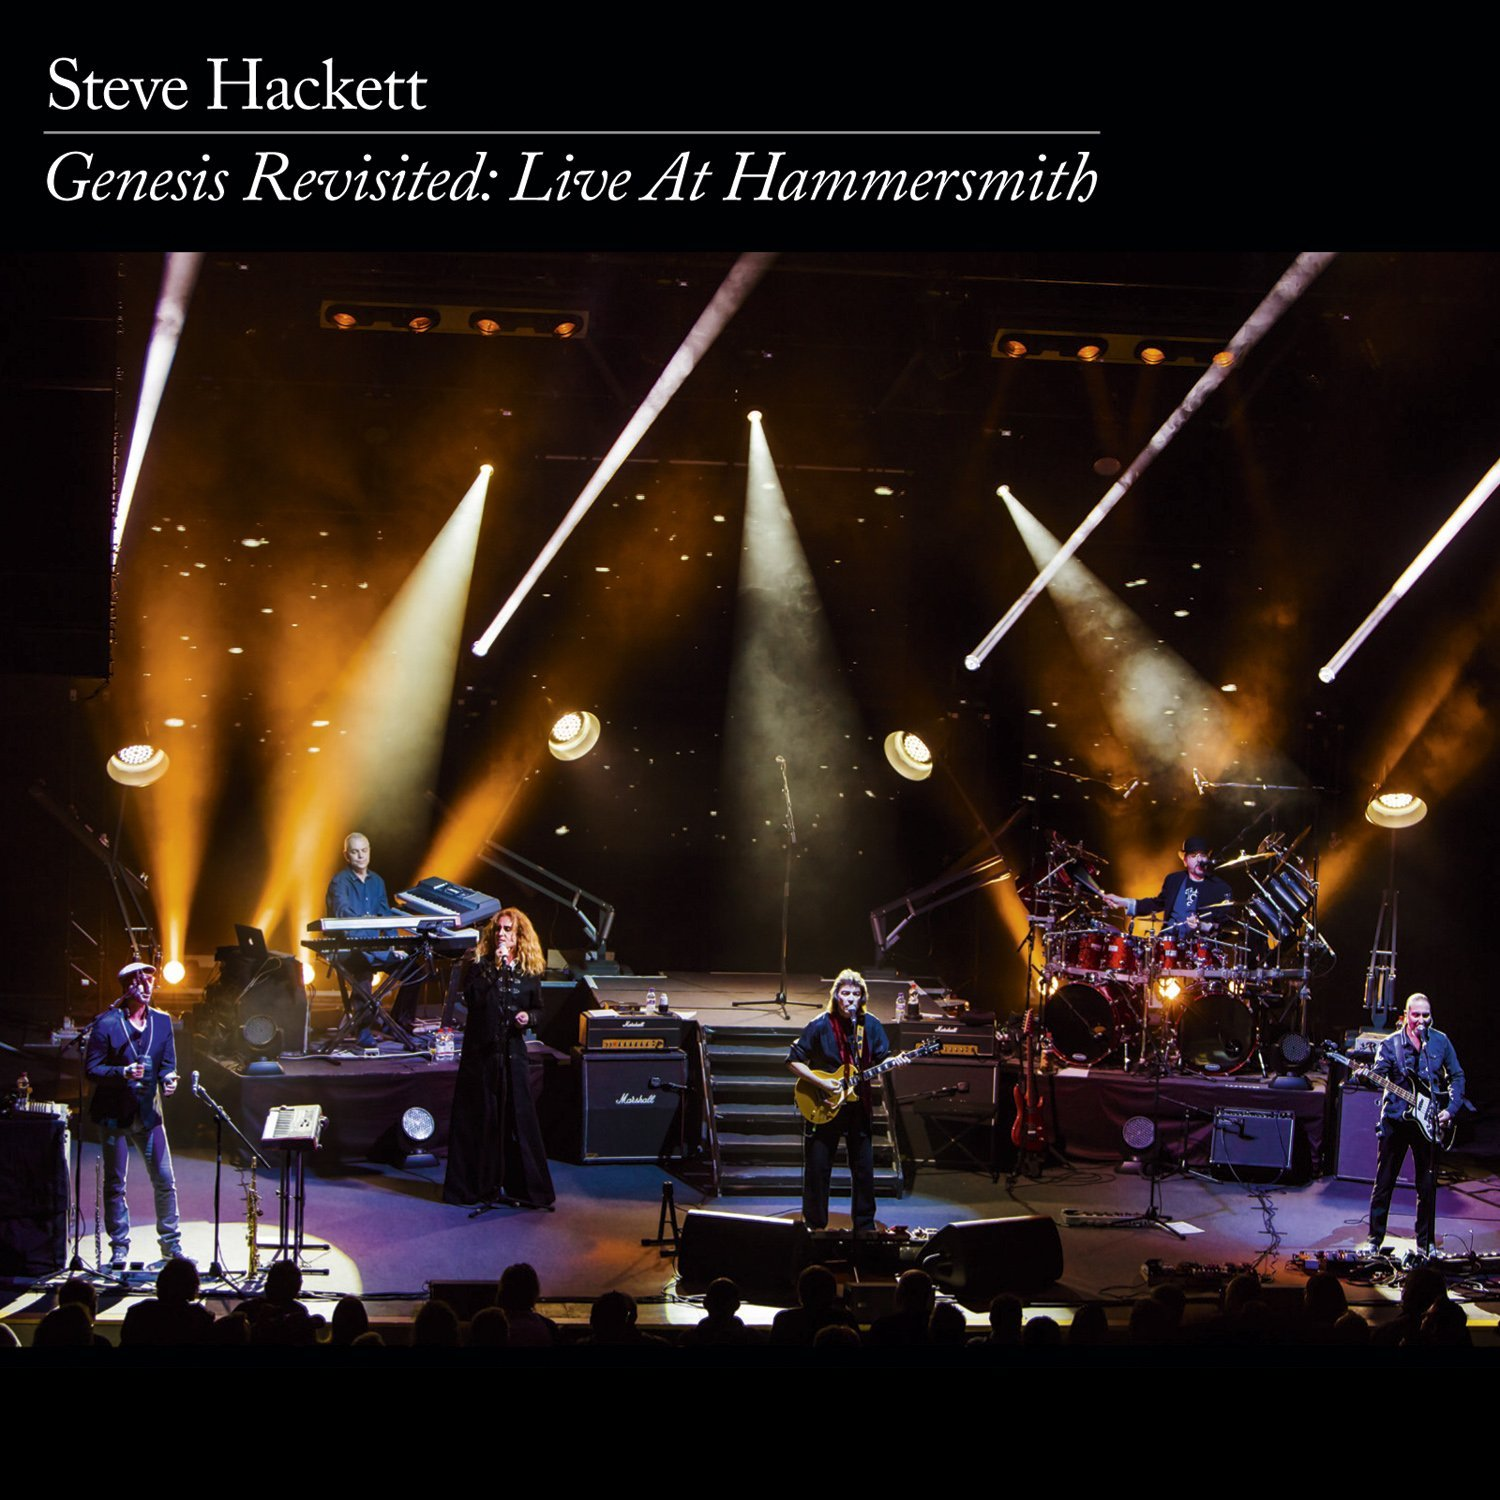 Steve Hackett — Genesis Revisited: Live at Hammersmith